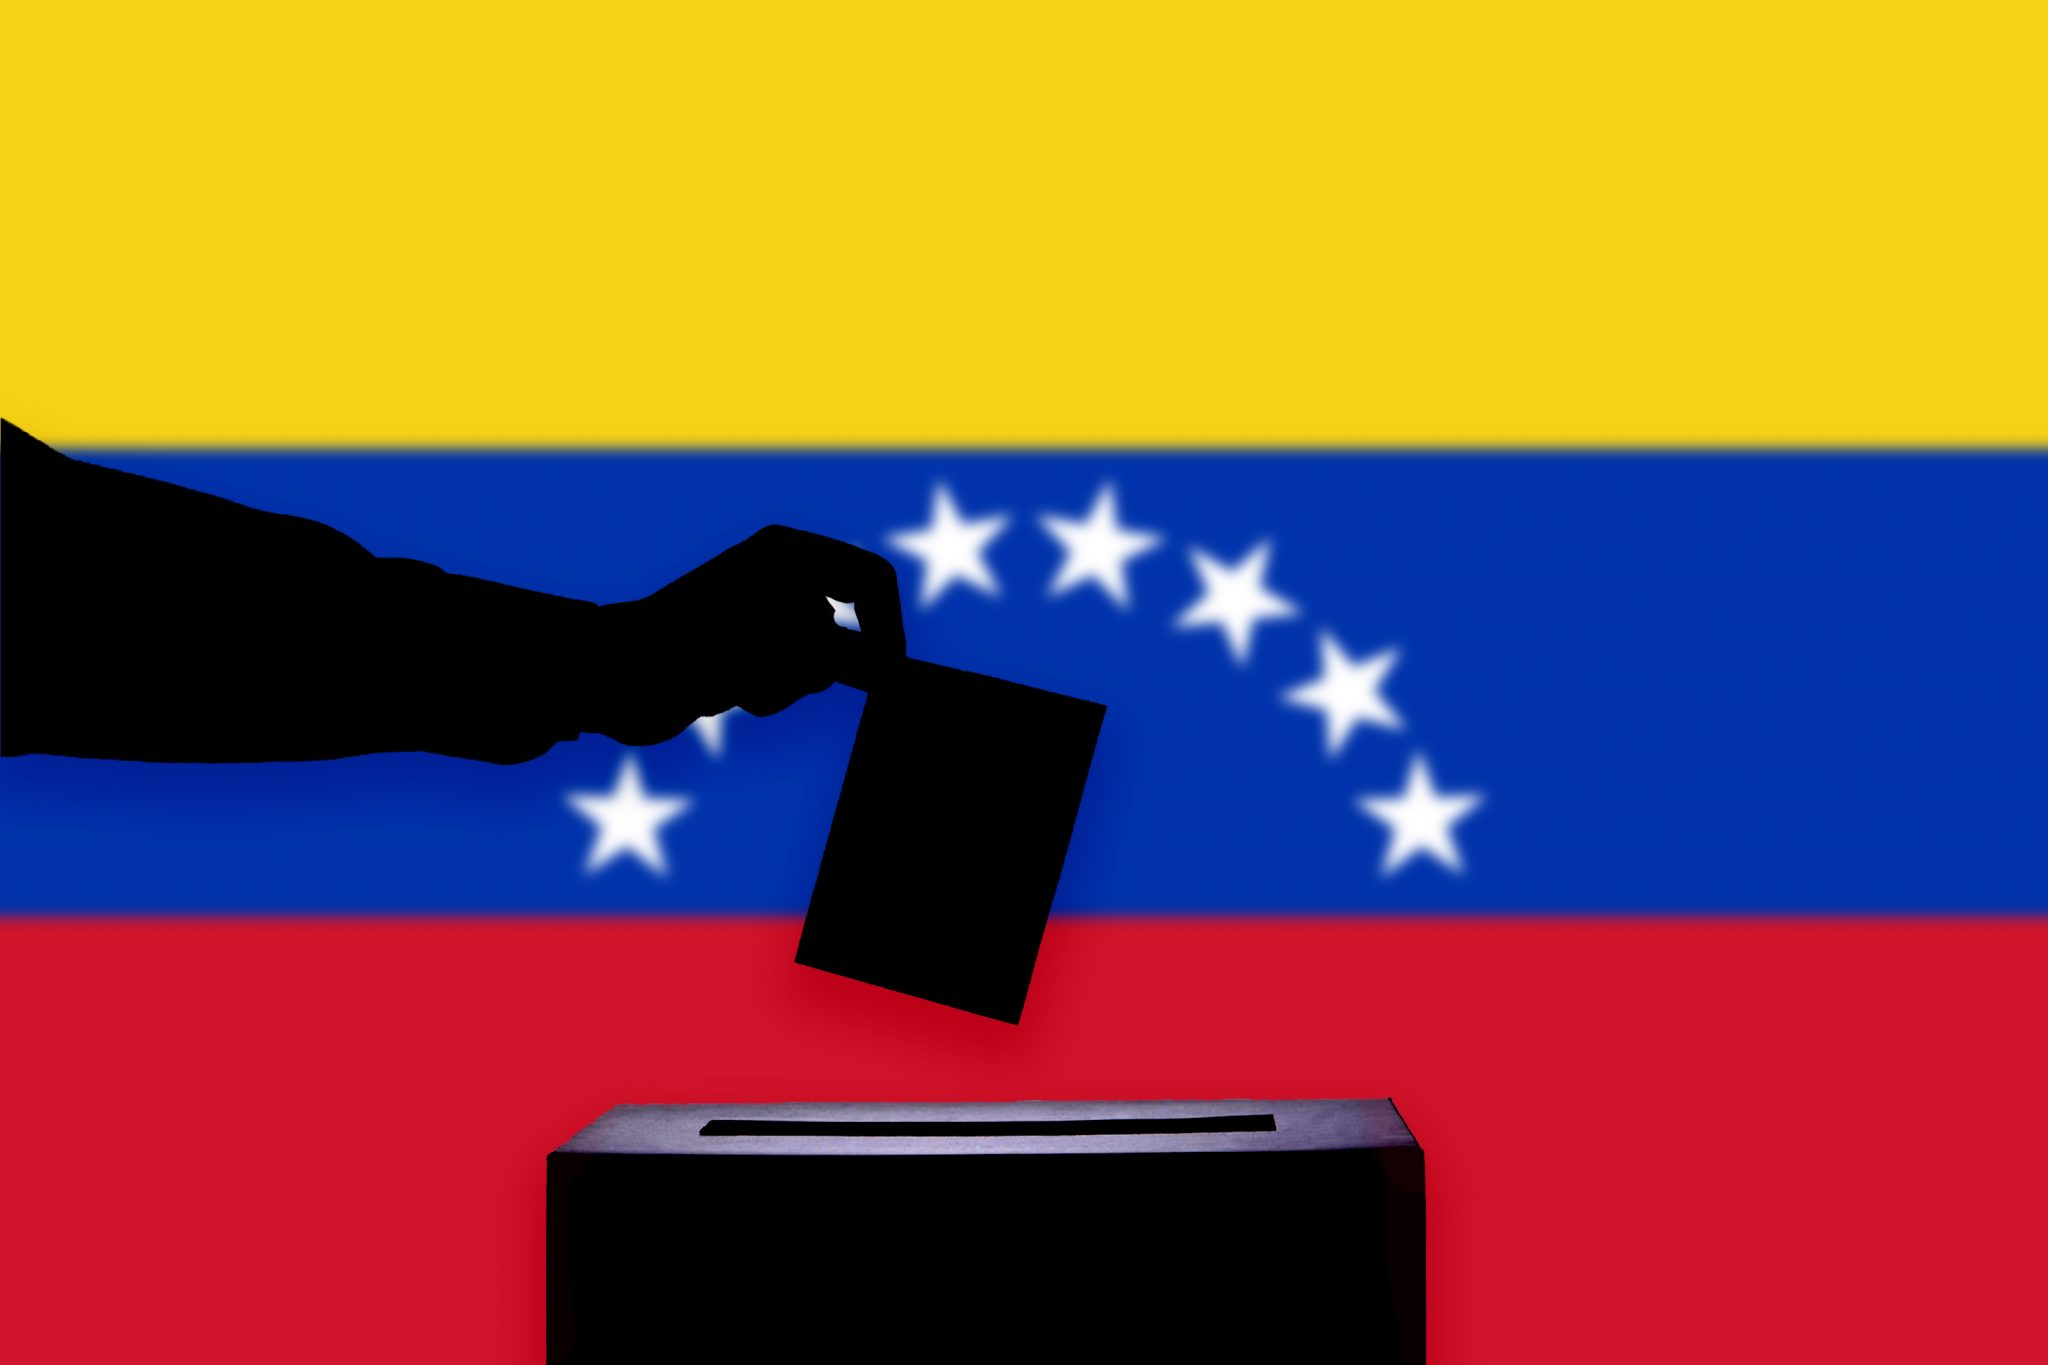 Venezuela Flag With Ballot Box